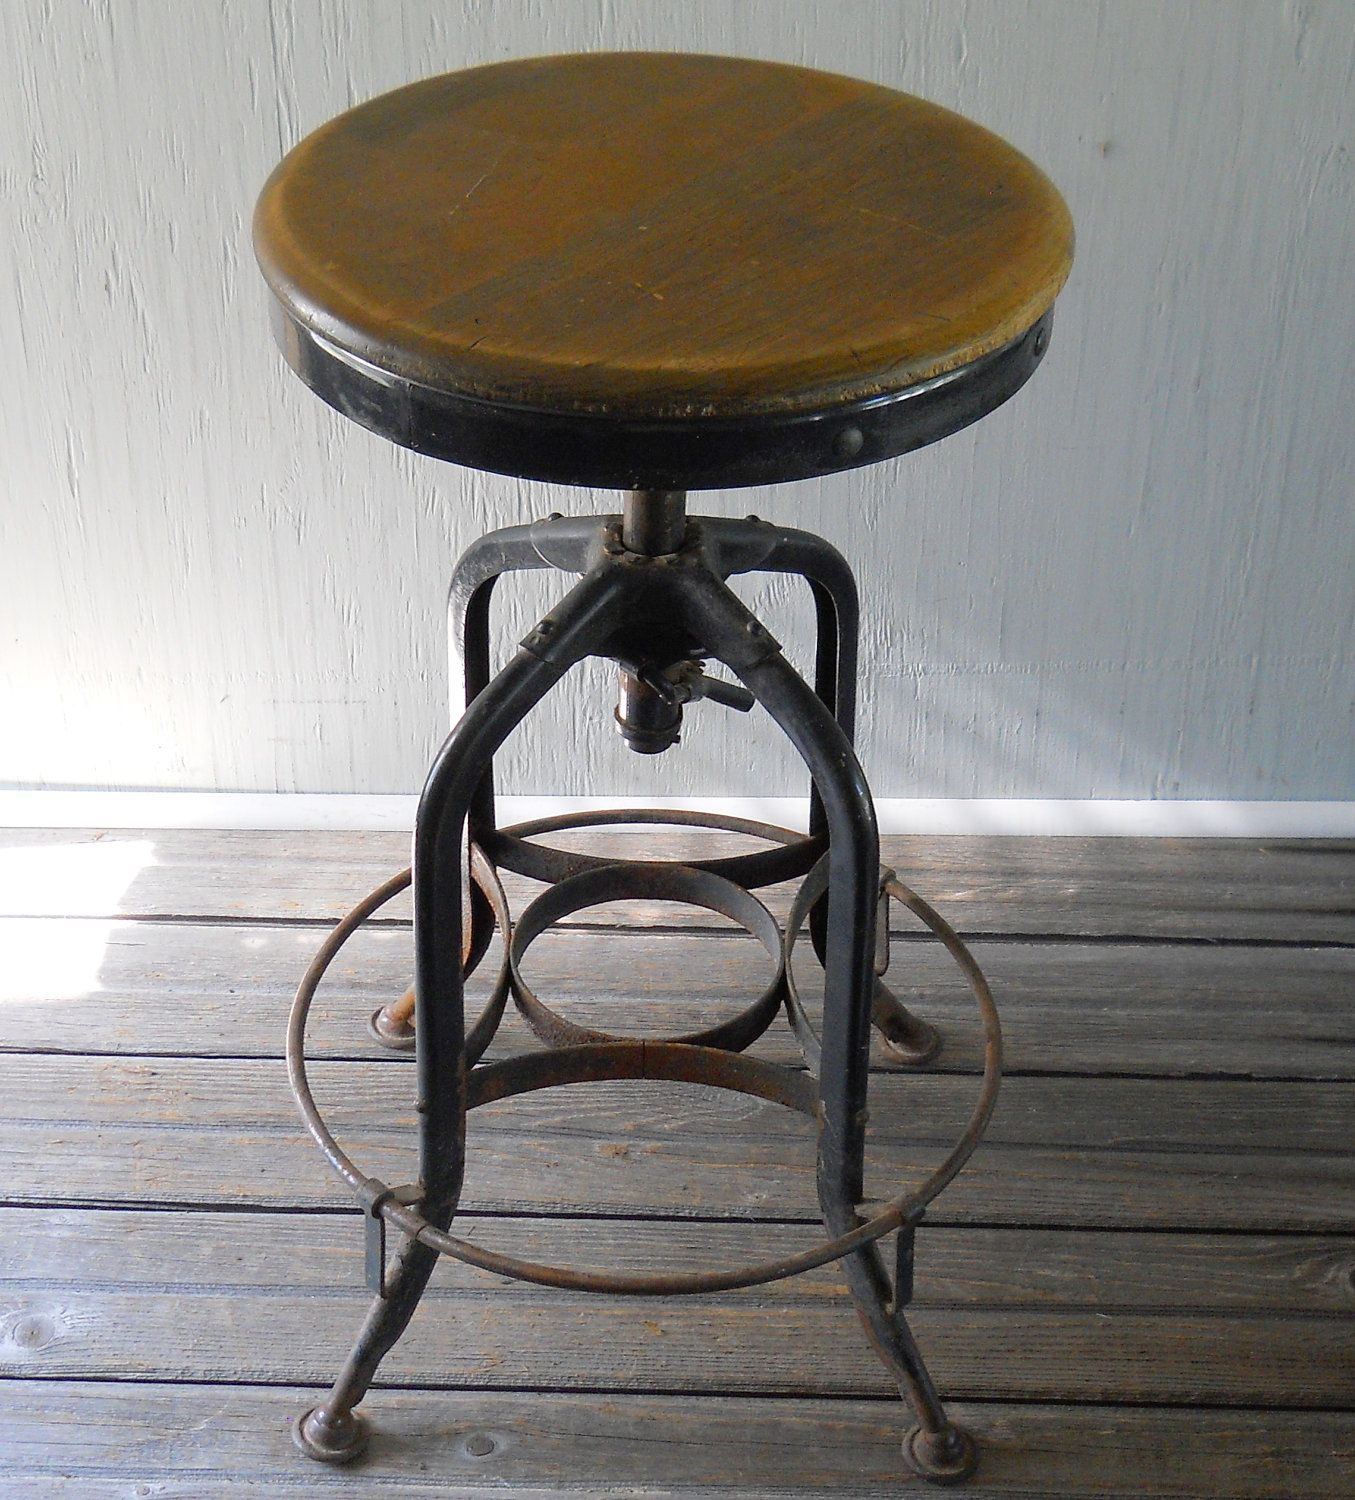 Vintage Drafting Stool Toledo Metal Furniture Company Industrial 295 00 Via Etsy Metal Furniture Vintage Stool Traditional Office Chairs